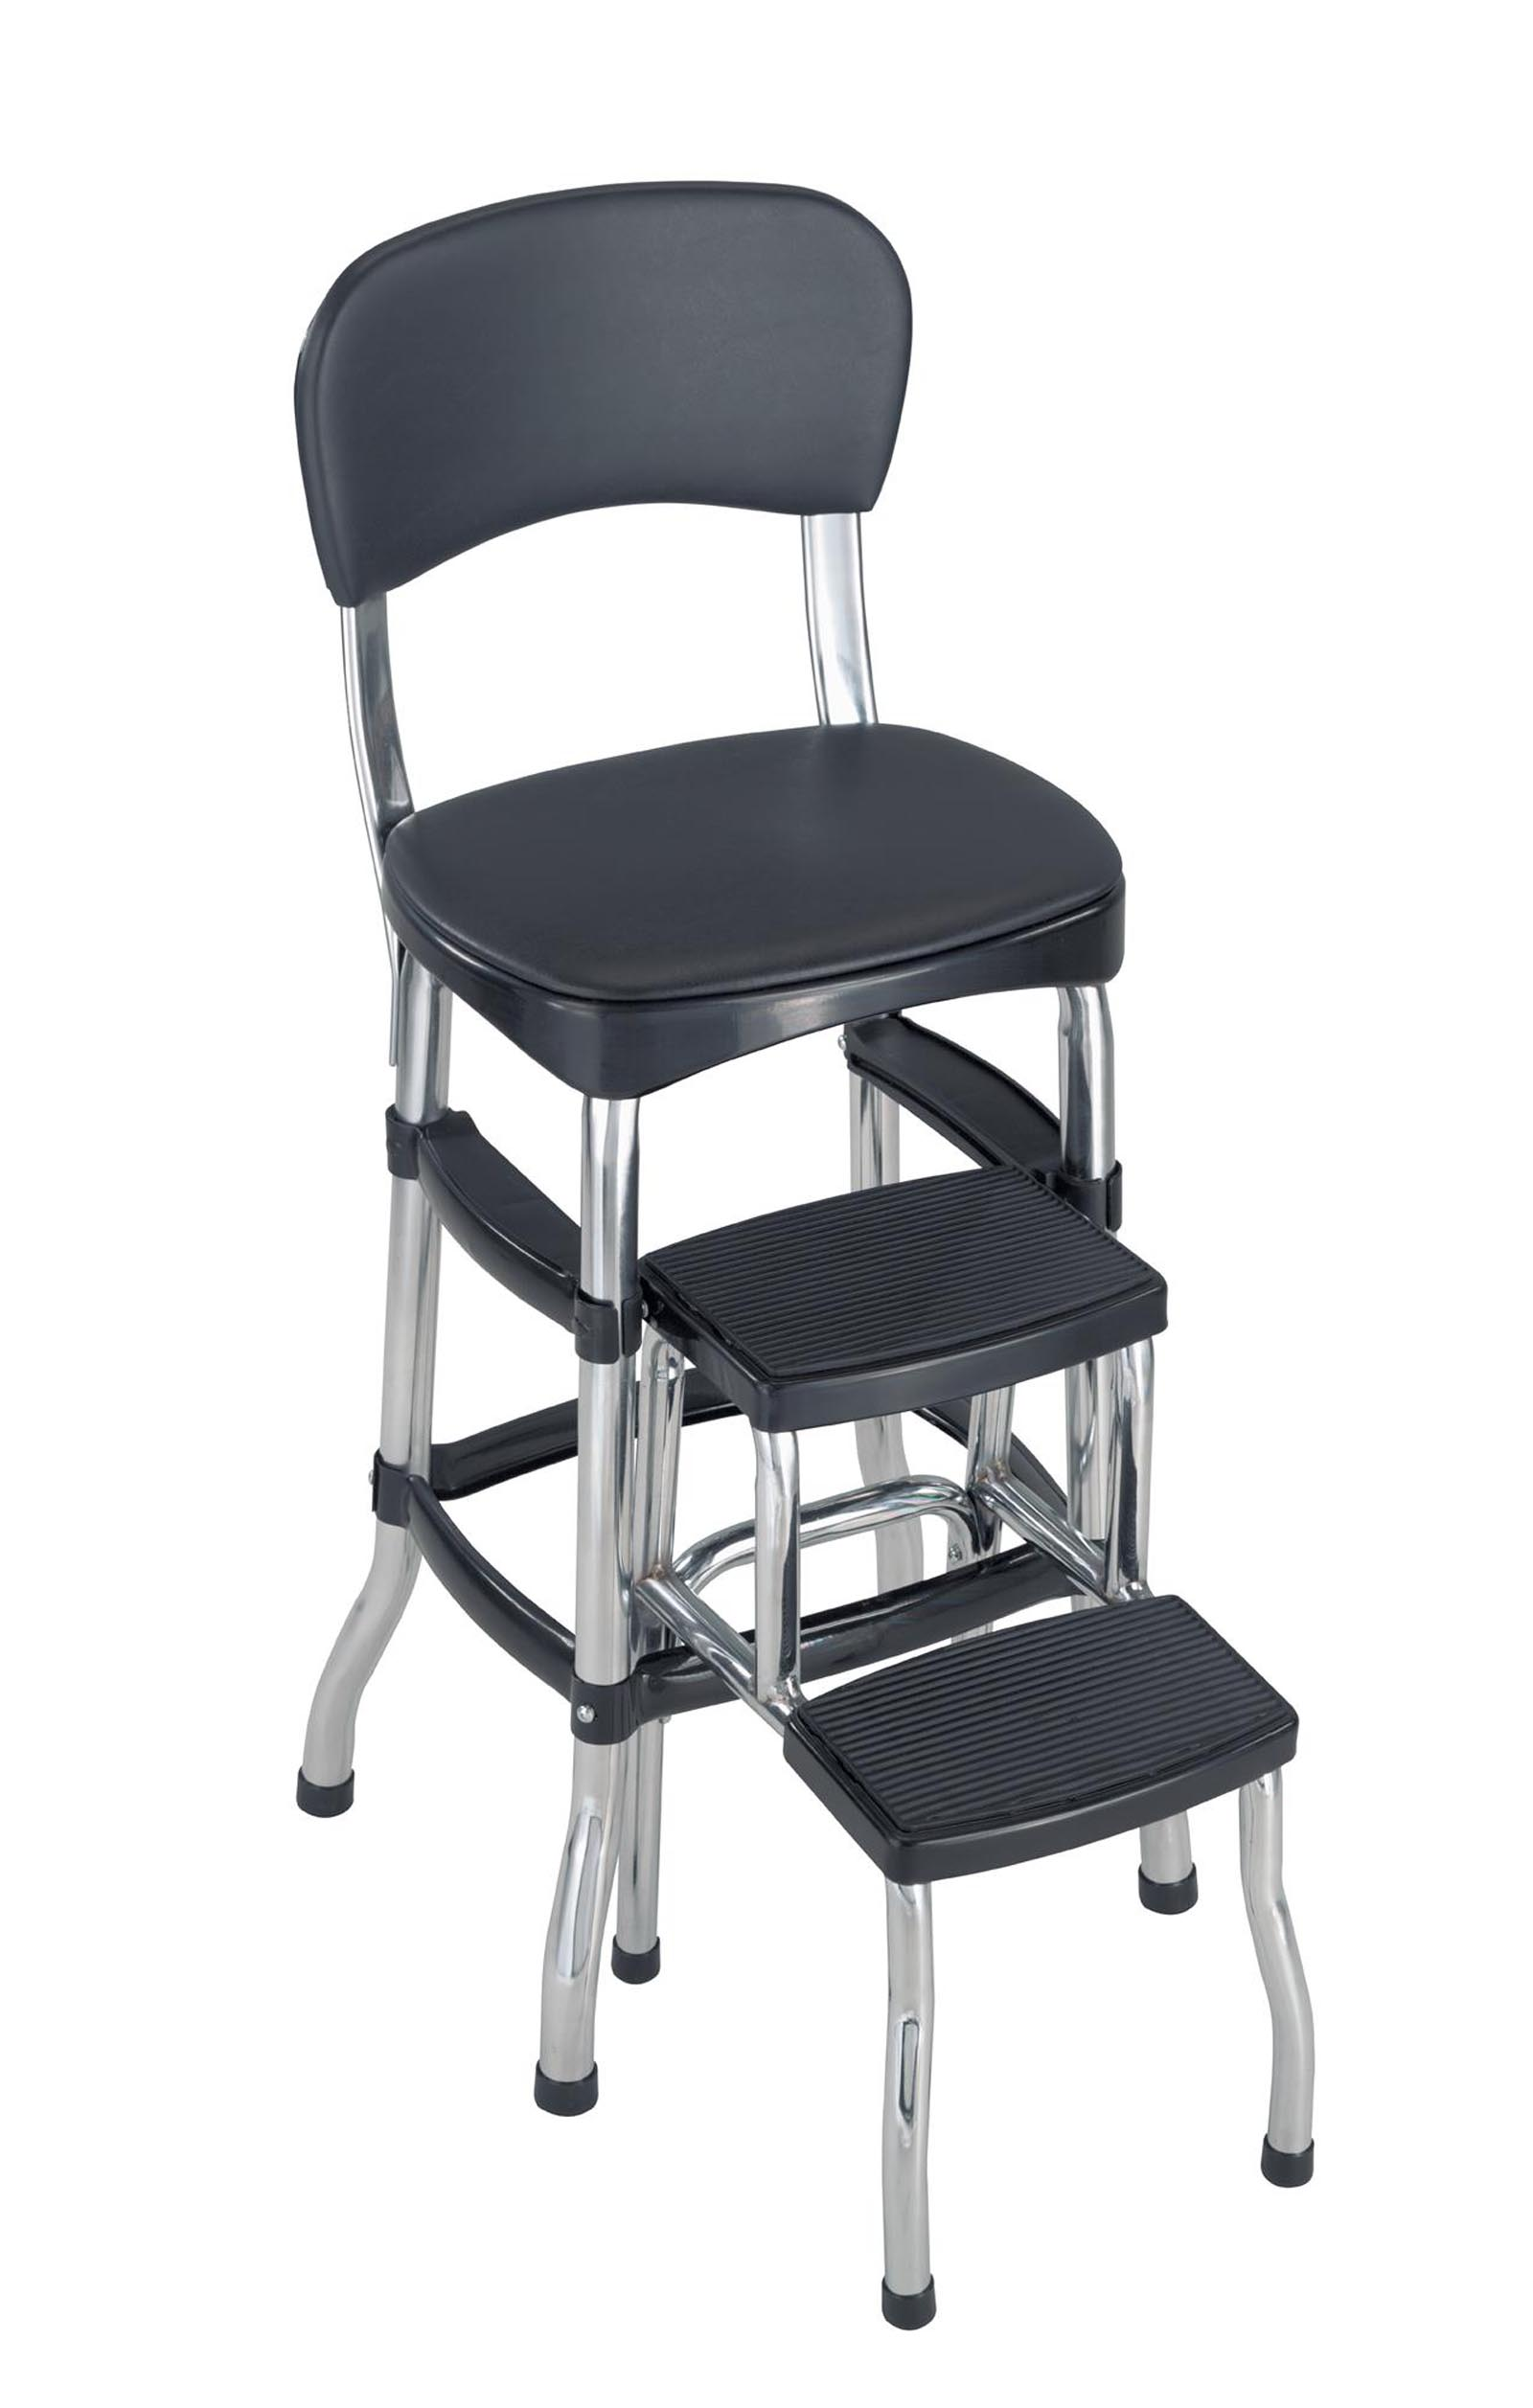 cosco retro counter chair step stool power accessories bags home and office products black